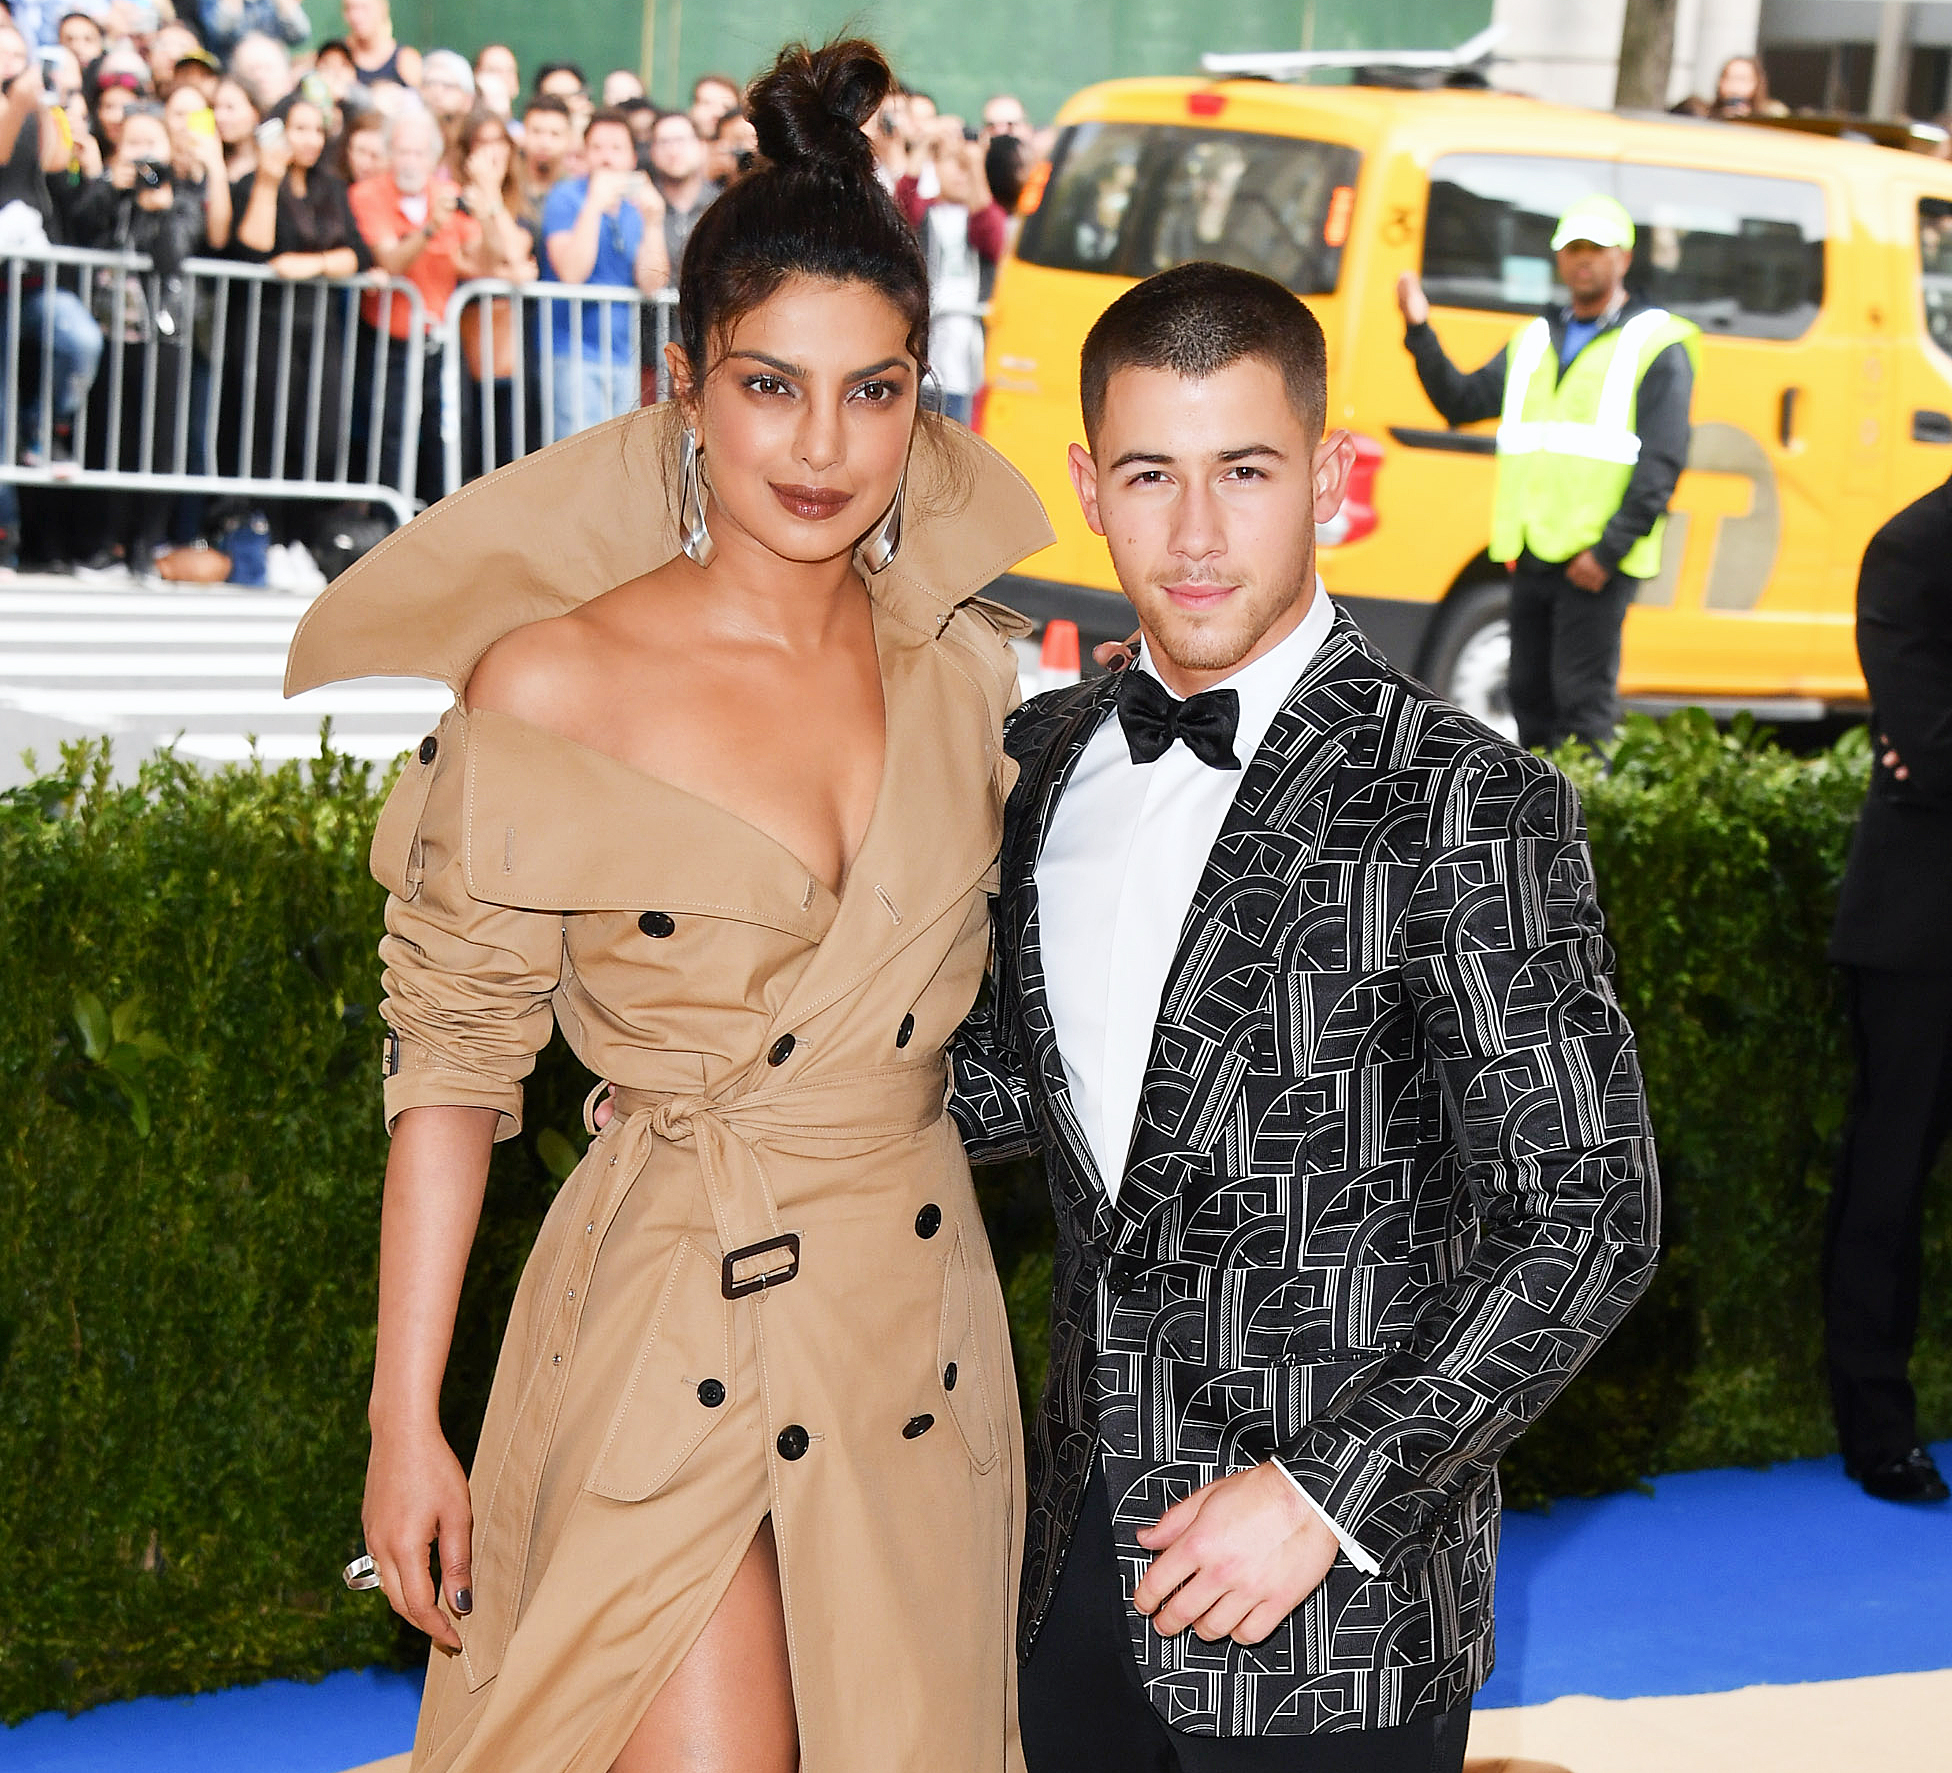 What is brewing between Priyanka Chopra and Nick Jonas?